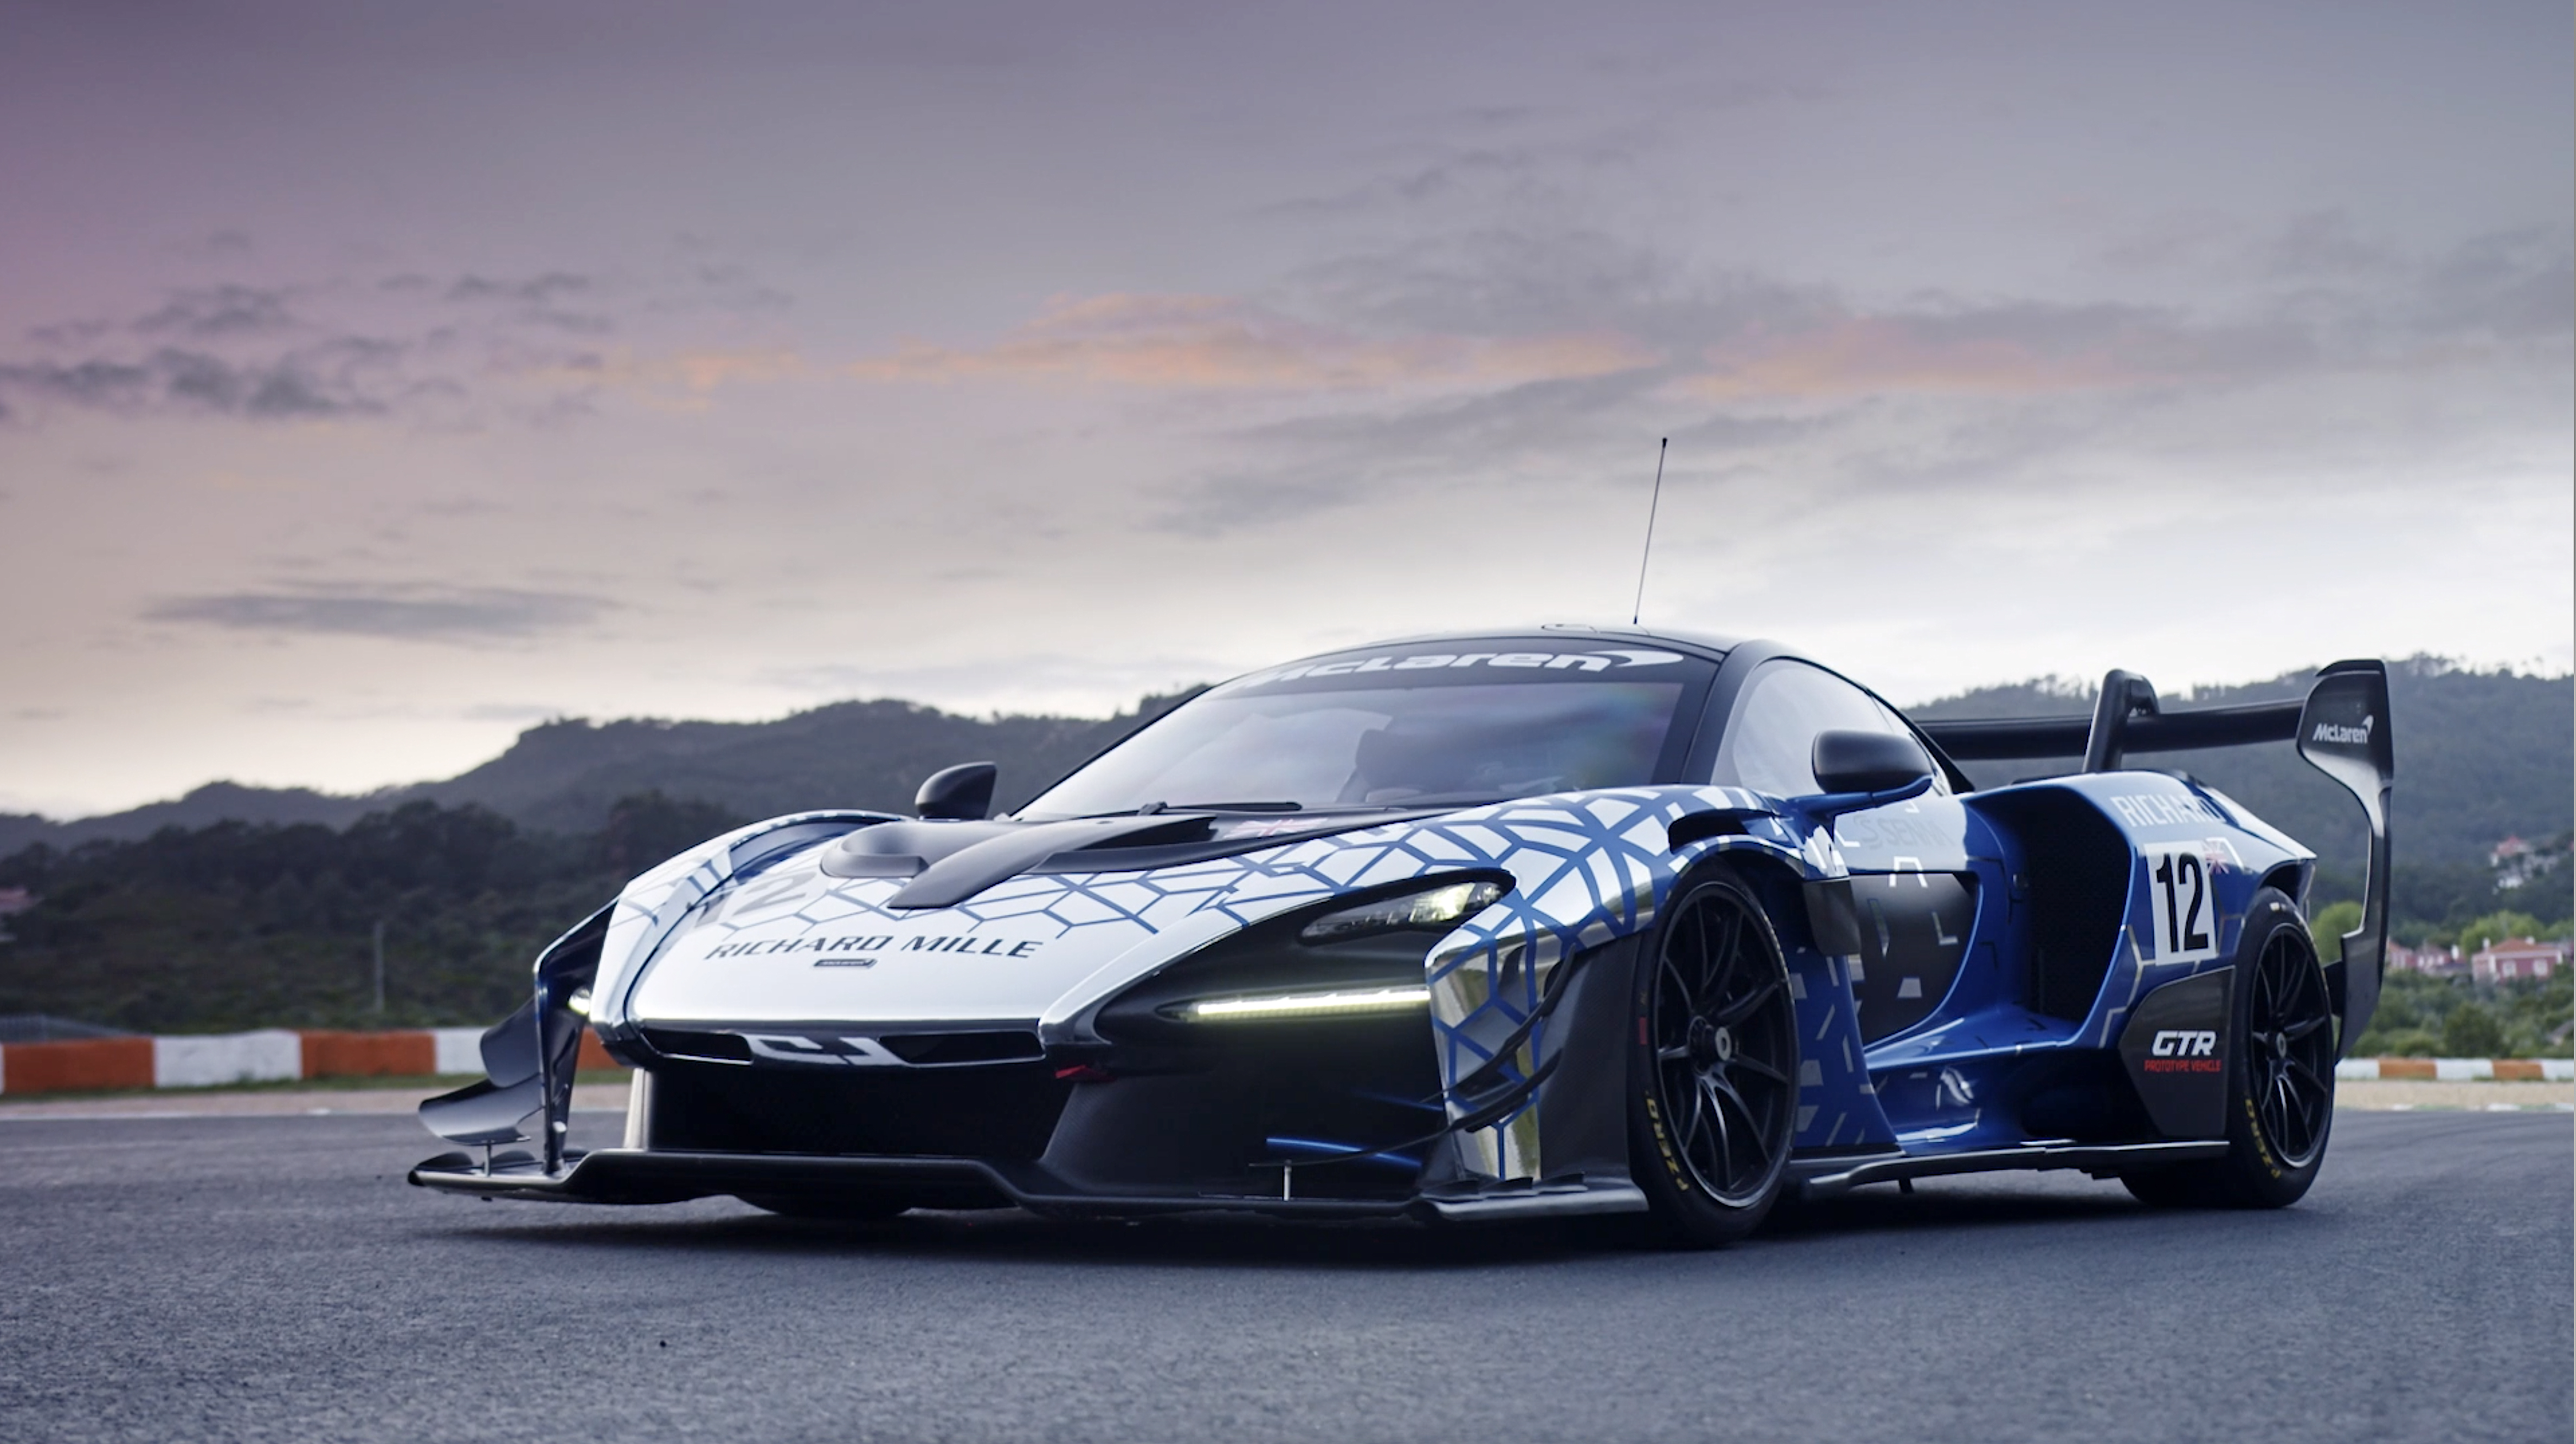 Bruno: The McLaren Senna GTR is momentous